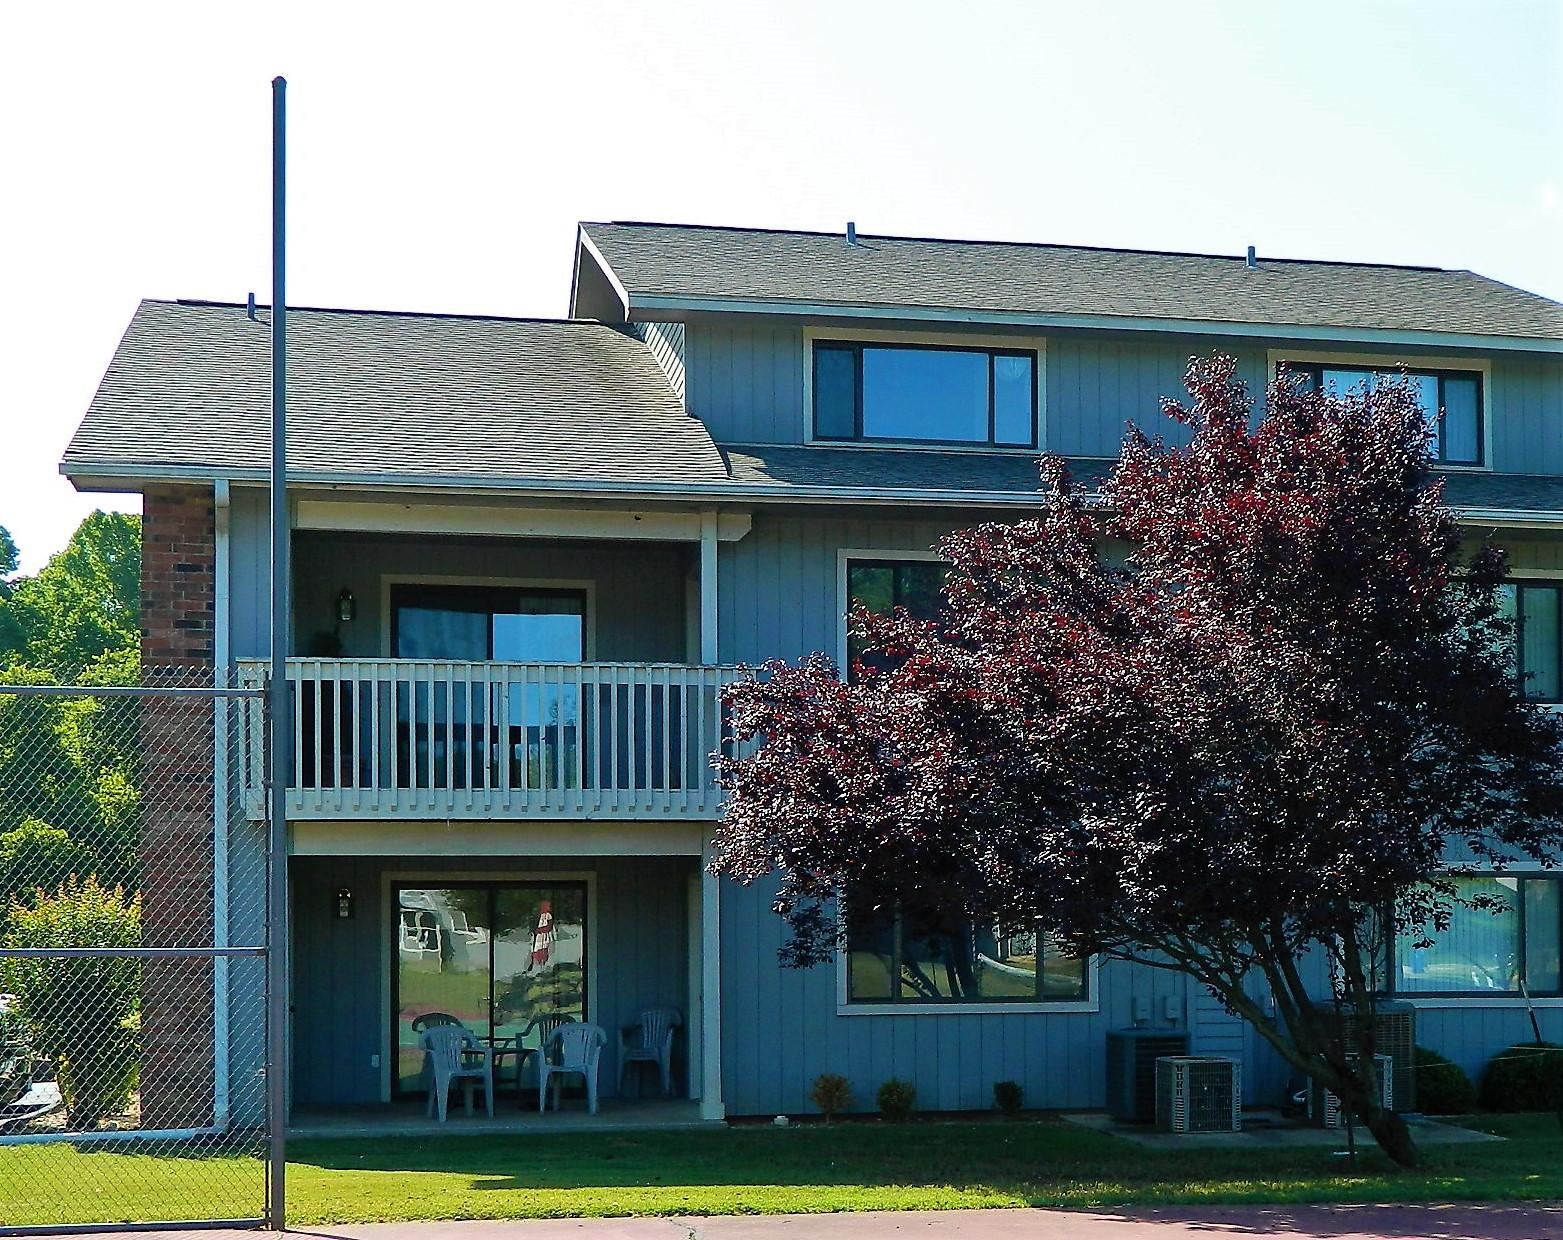 123 River Point Road #37 Hollister, MO 65672